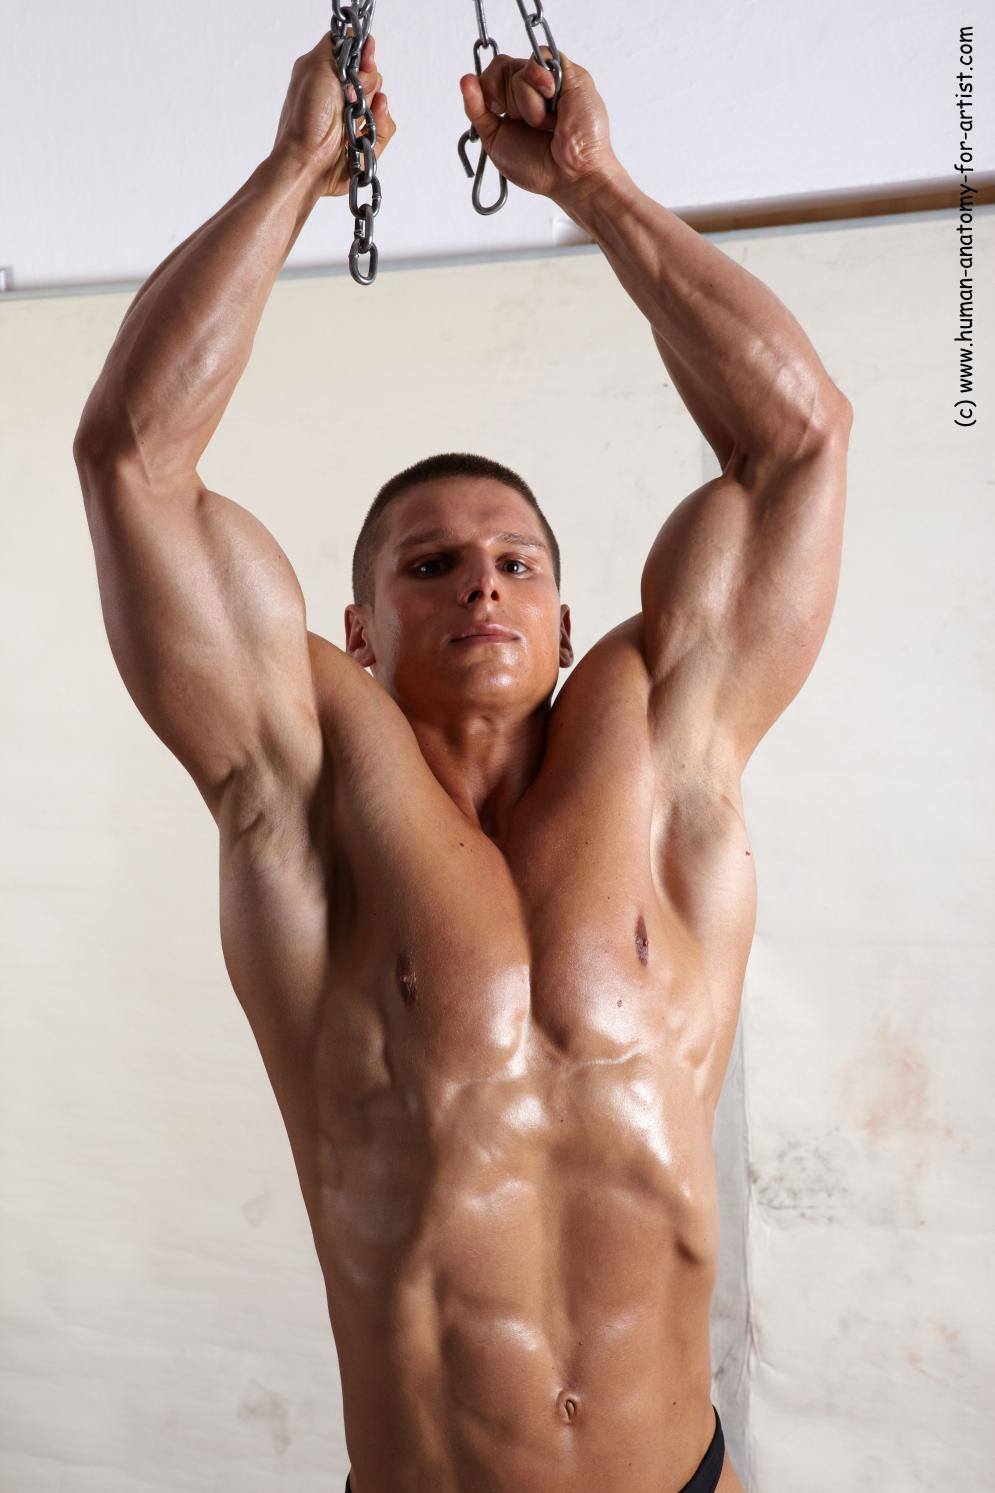 Image from Male requested poses - 59387dobroslav_31.jpg